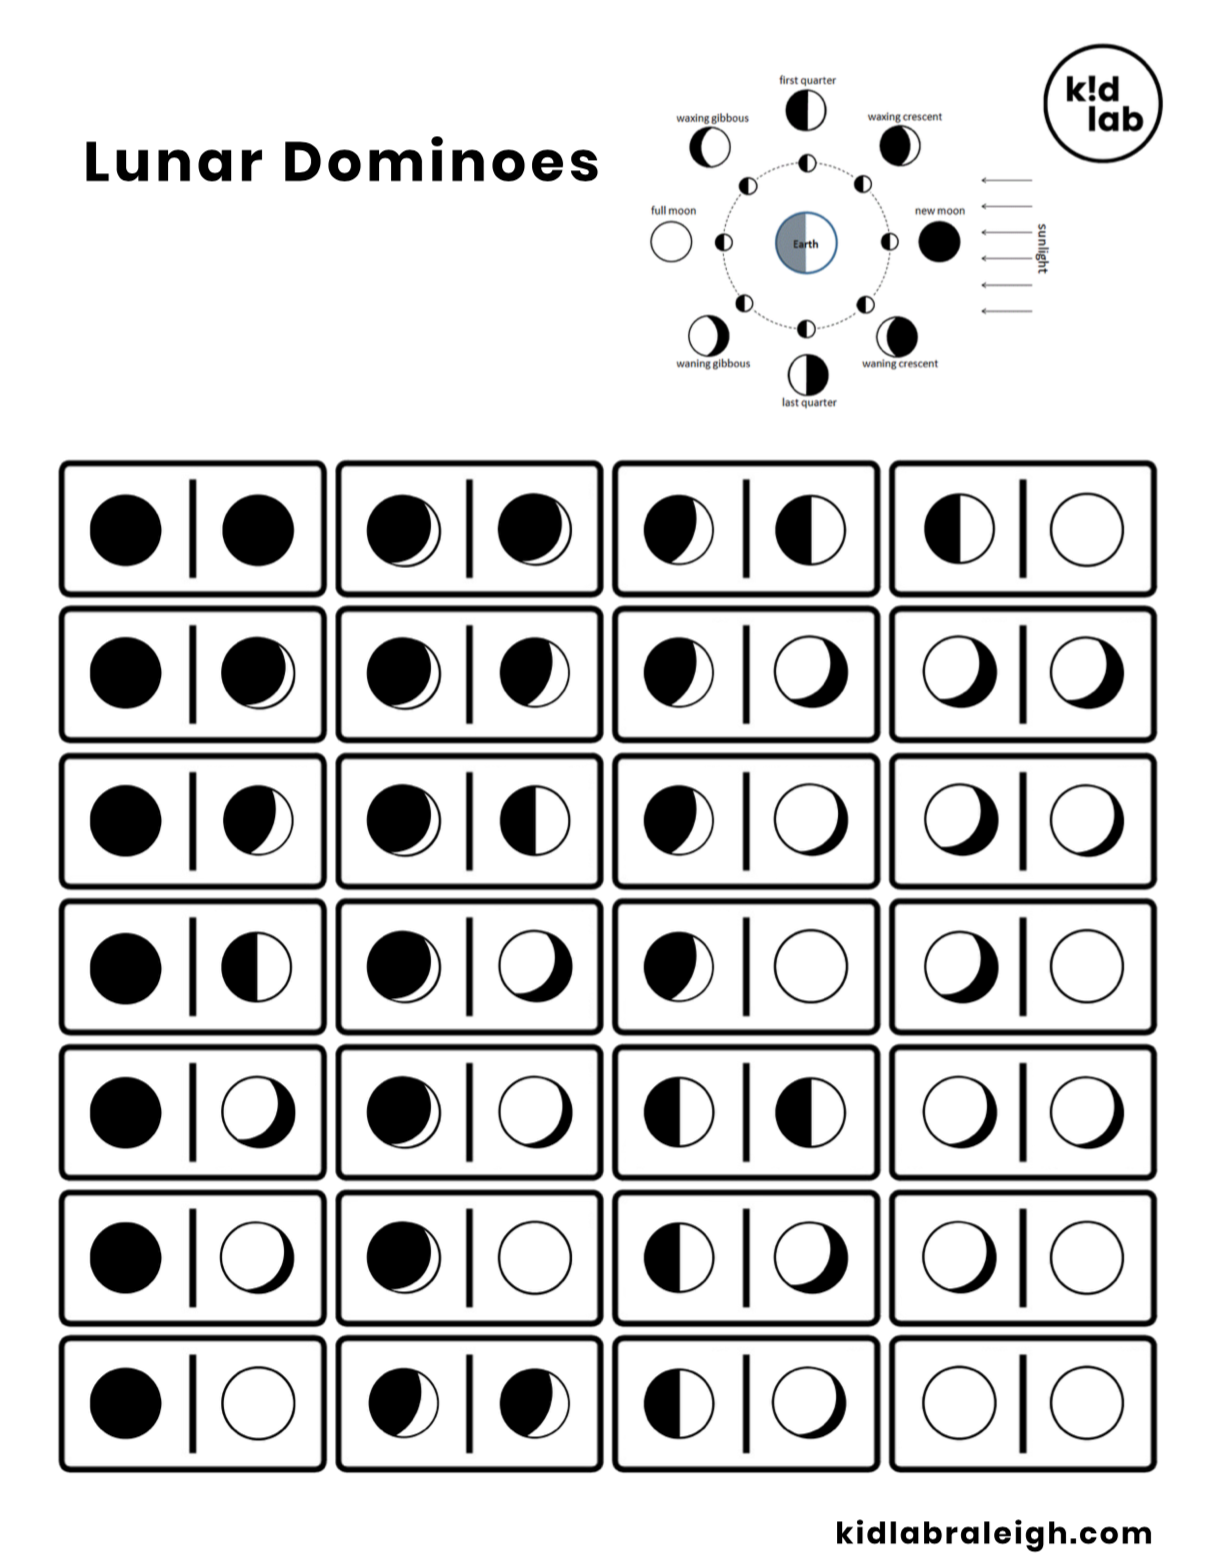 Kid Lab Lunar Dominoes.png